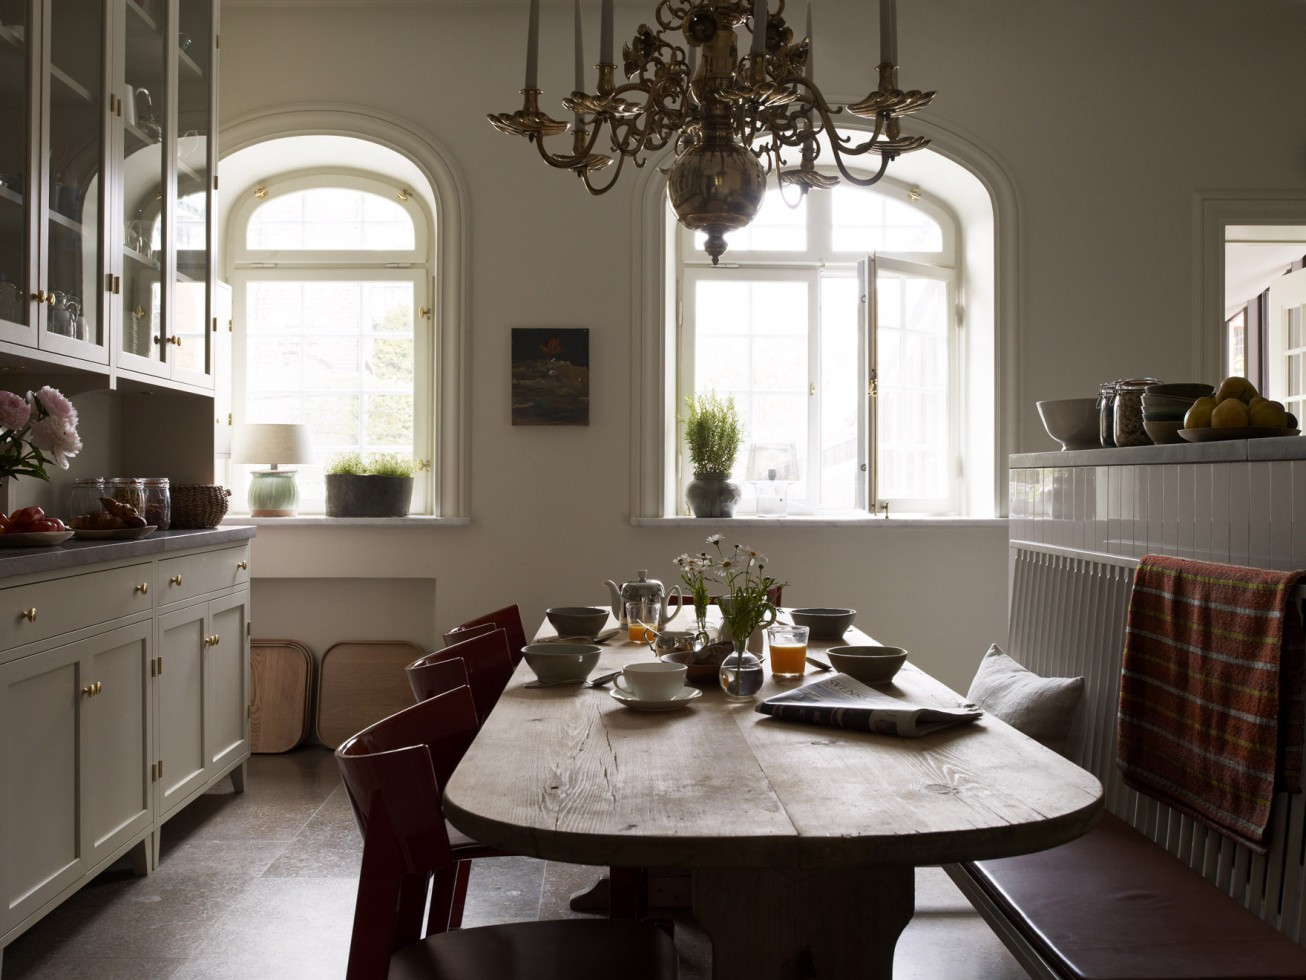 A rustic kitchen table does a lot for the homey feeling of this hotel. Feel free to have your breakfast here or anywhere you like.